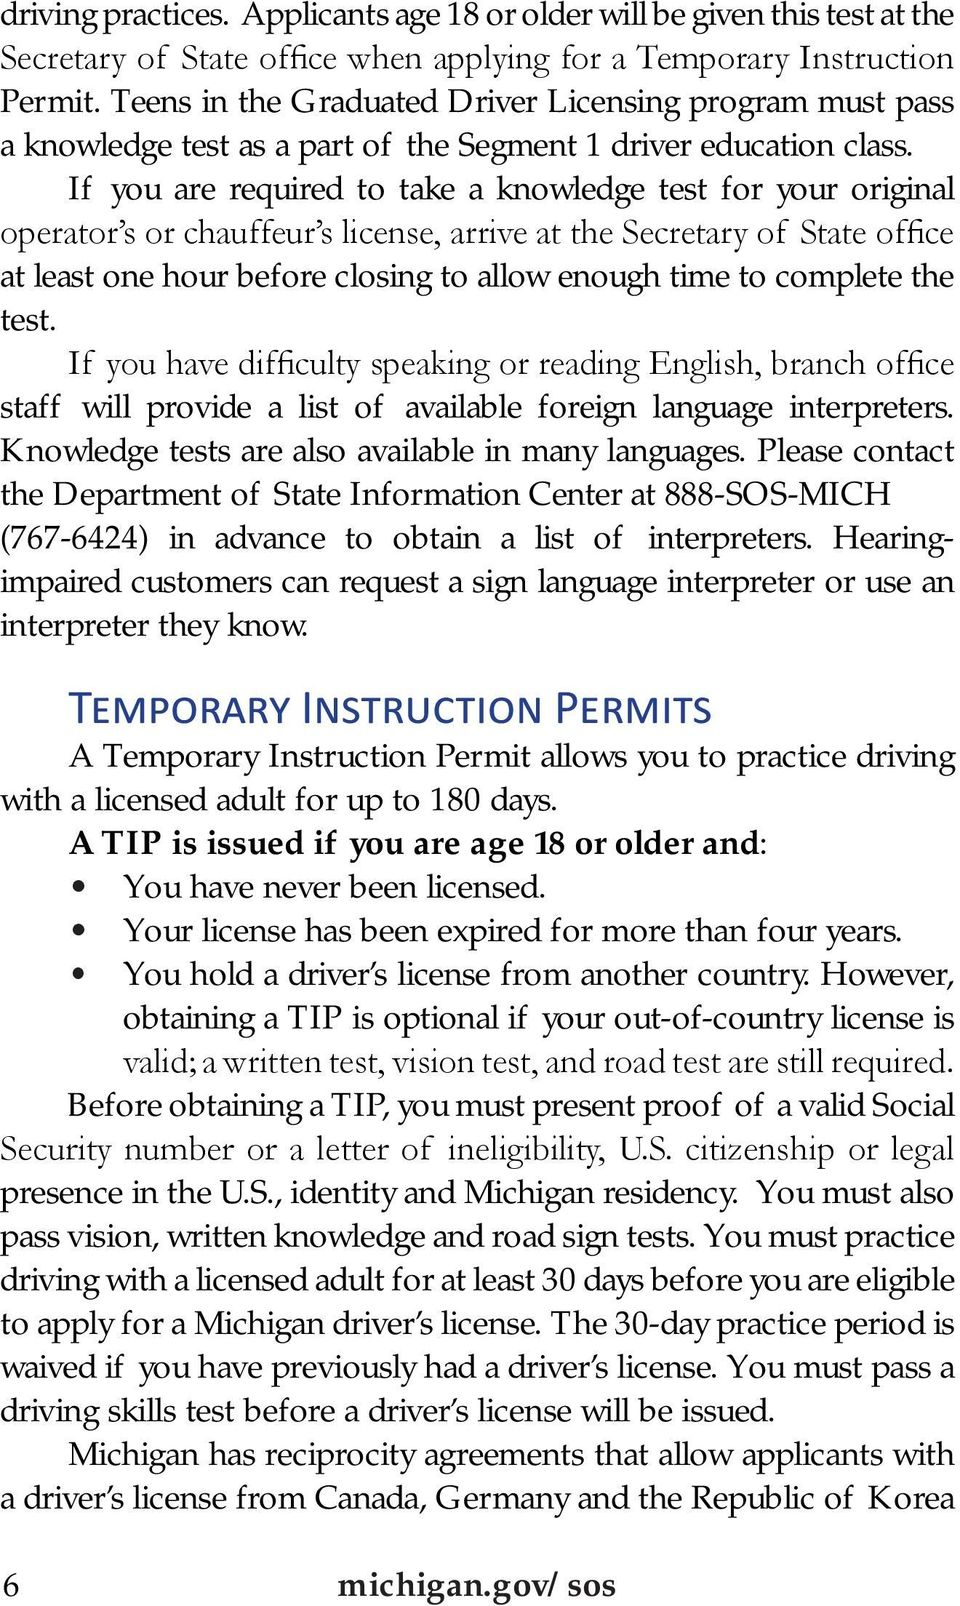 If you are required to take a knowledge test for your original operator s or chauffeur s license, arrive at the Secretary of State office at least one hour before closing to allow enough time to